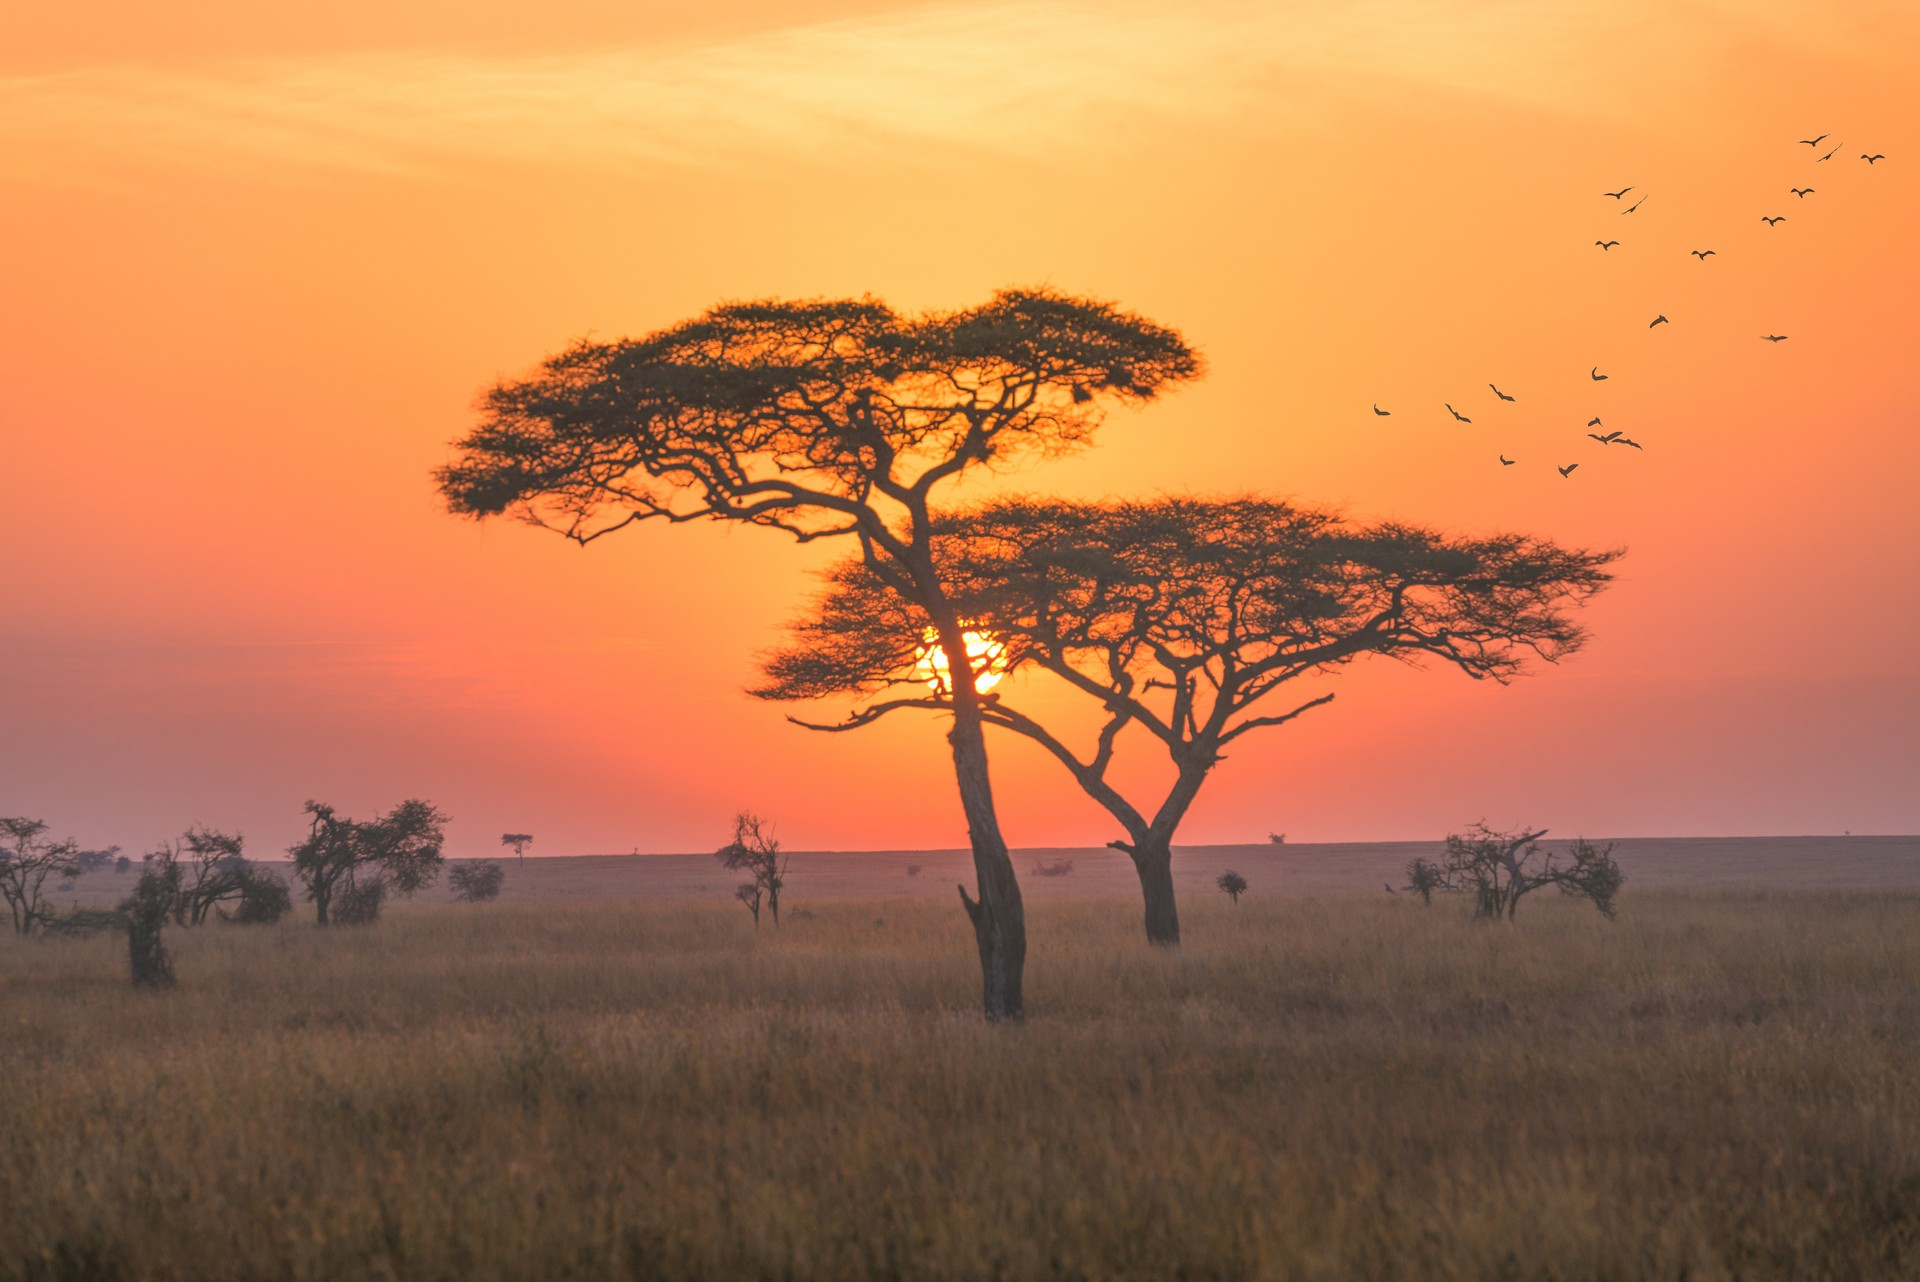 Sunset on the savannah. Kenya